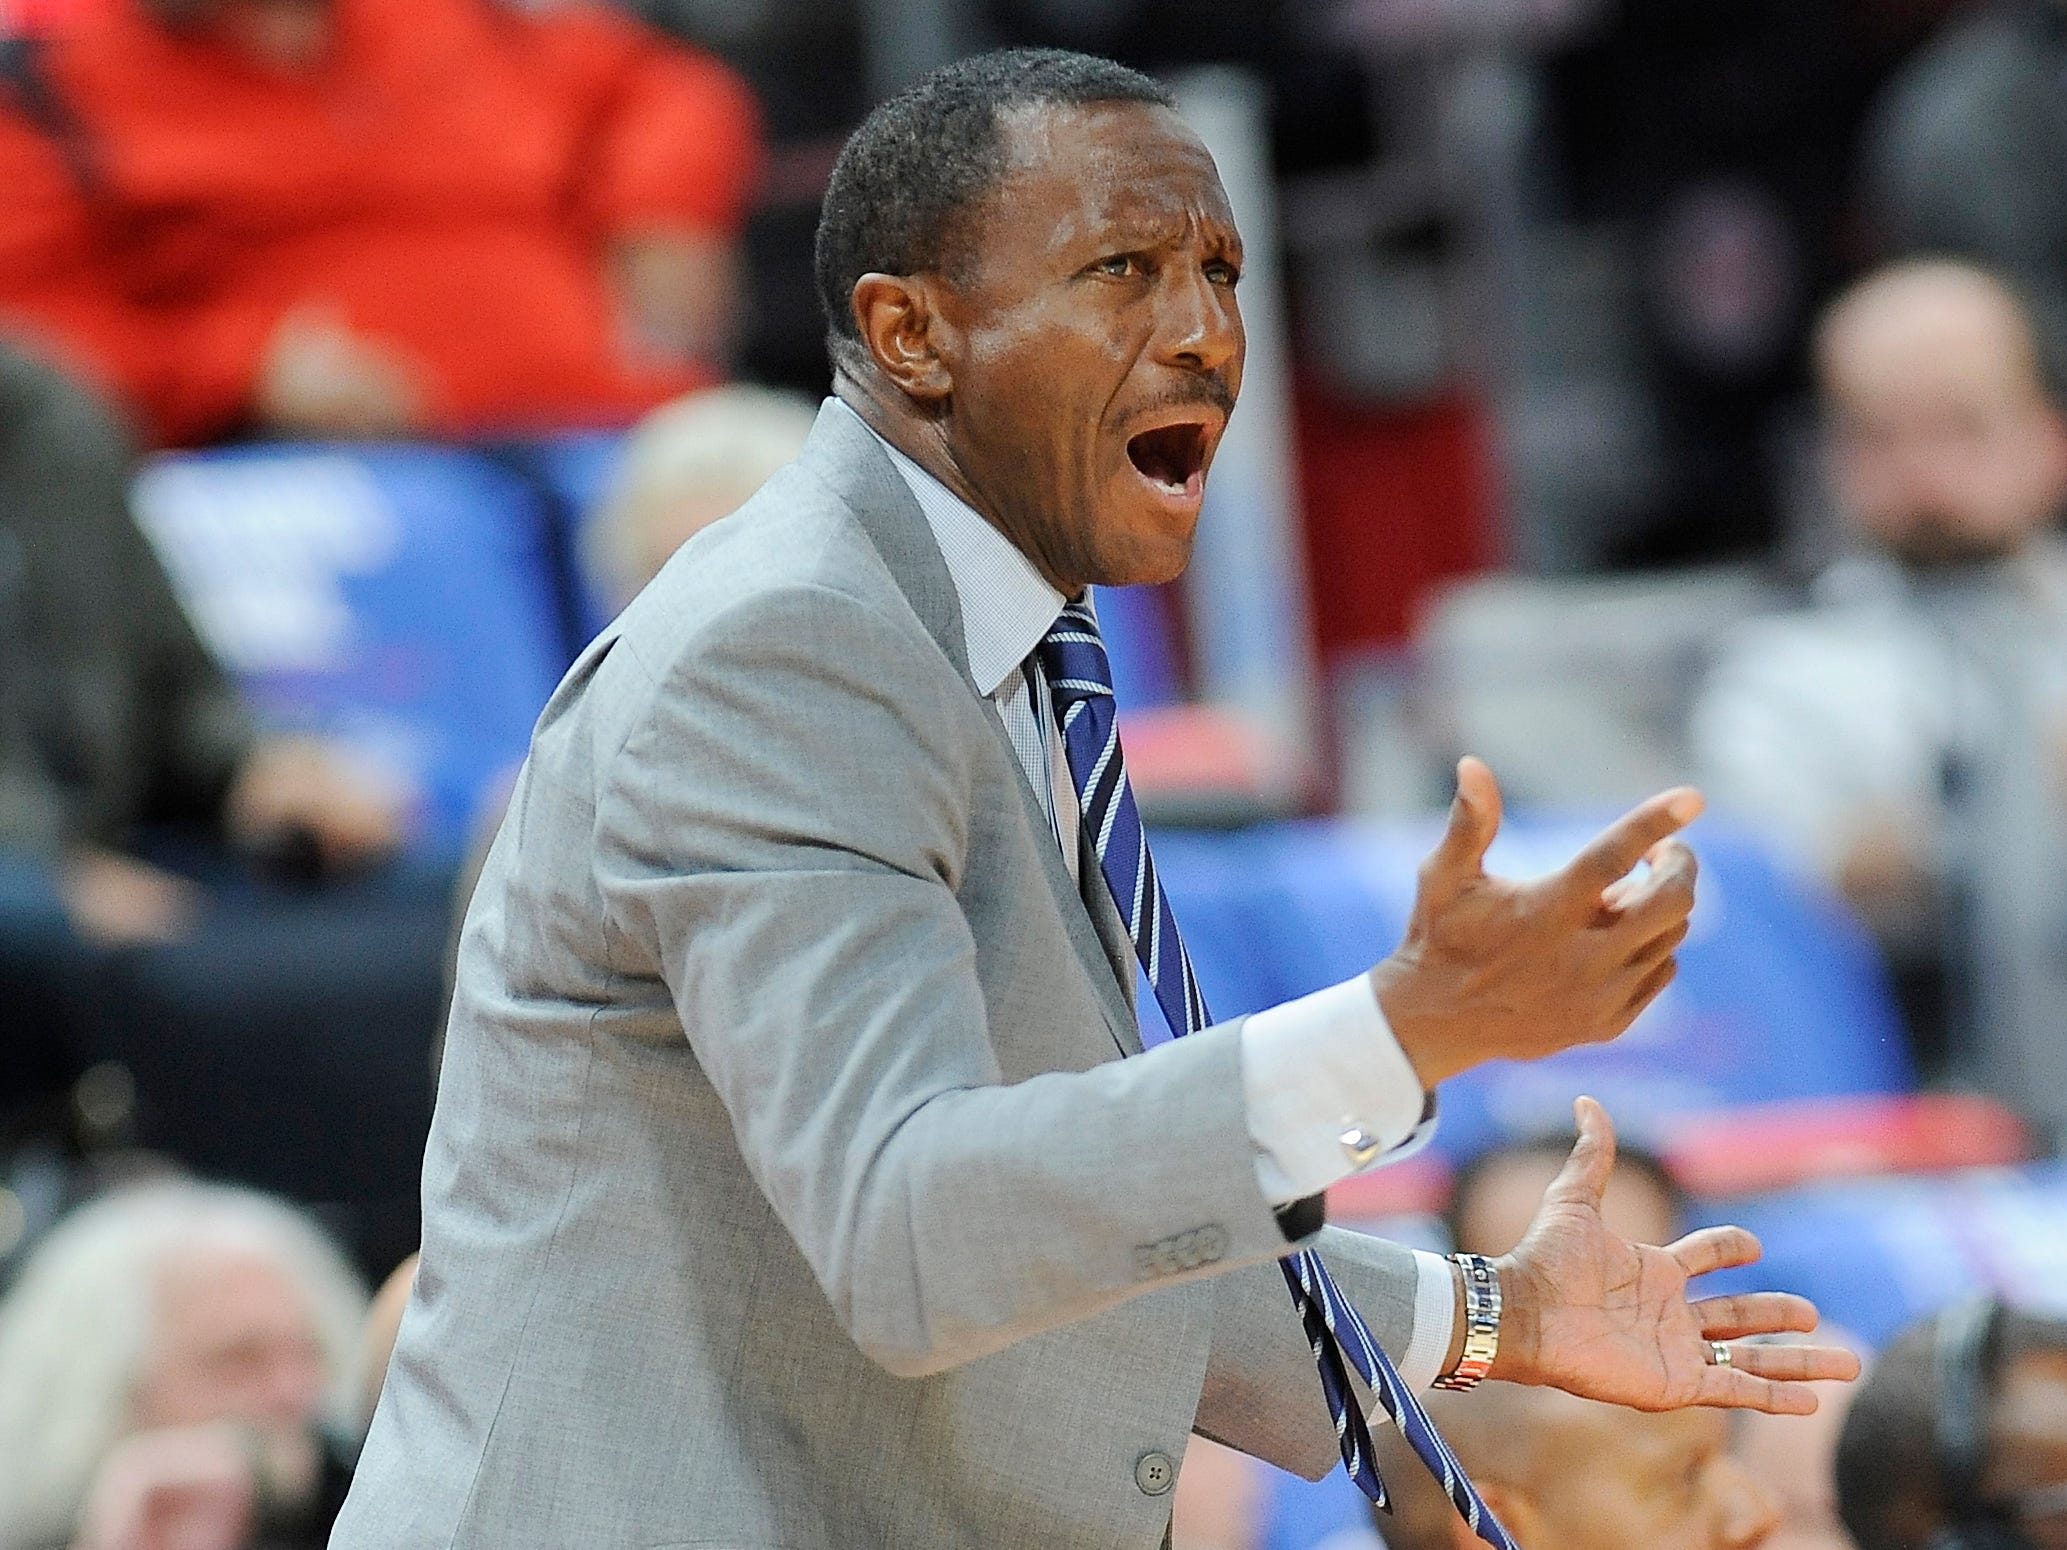 Detroit Pistons new head coach Dwane Casey shouts insrtuctions to his team during a 103-100 season-opening victory over the Brooklyn Nets at Little Caesars Arena in Detroit on October 17, 2018.